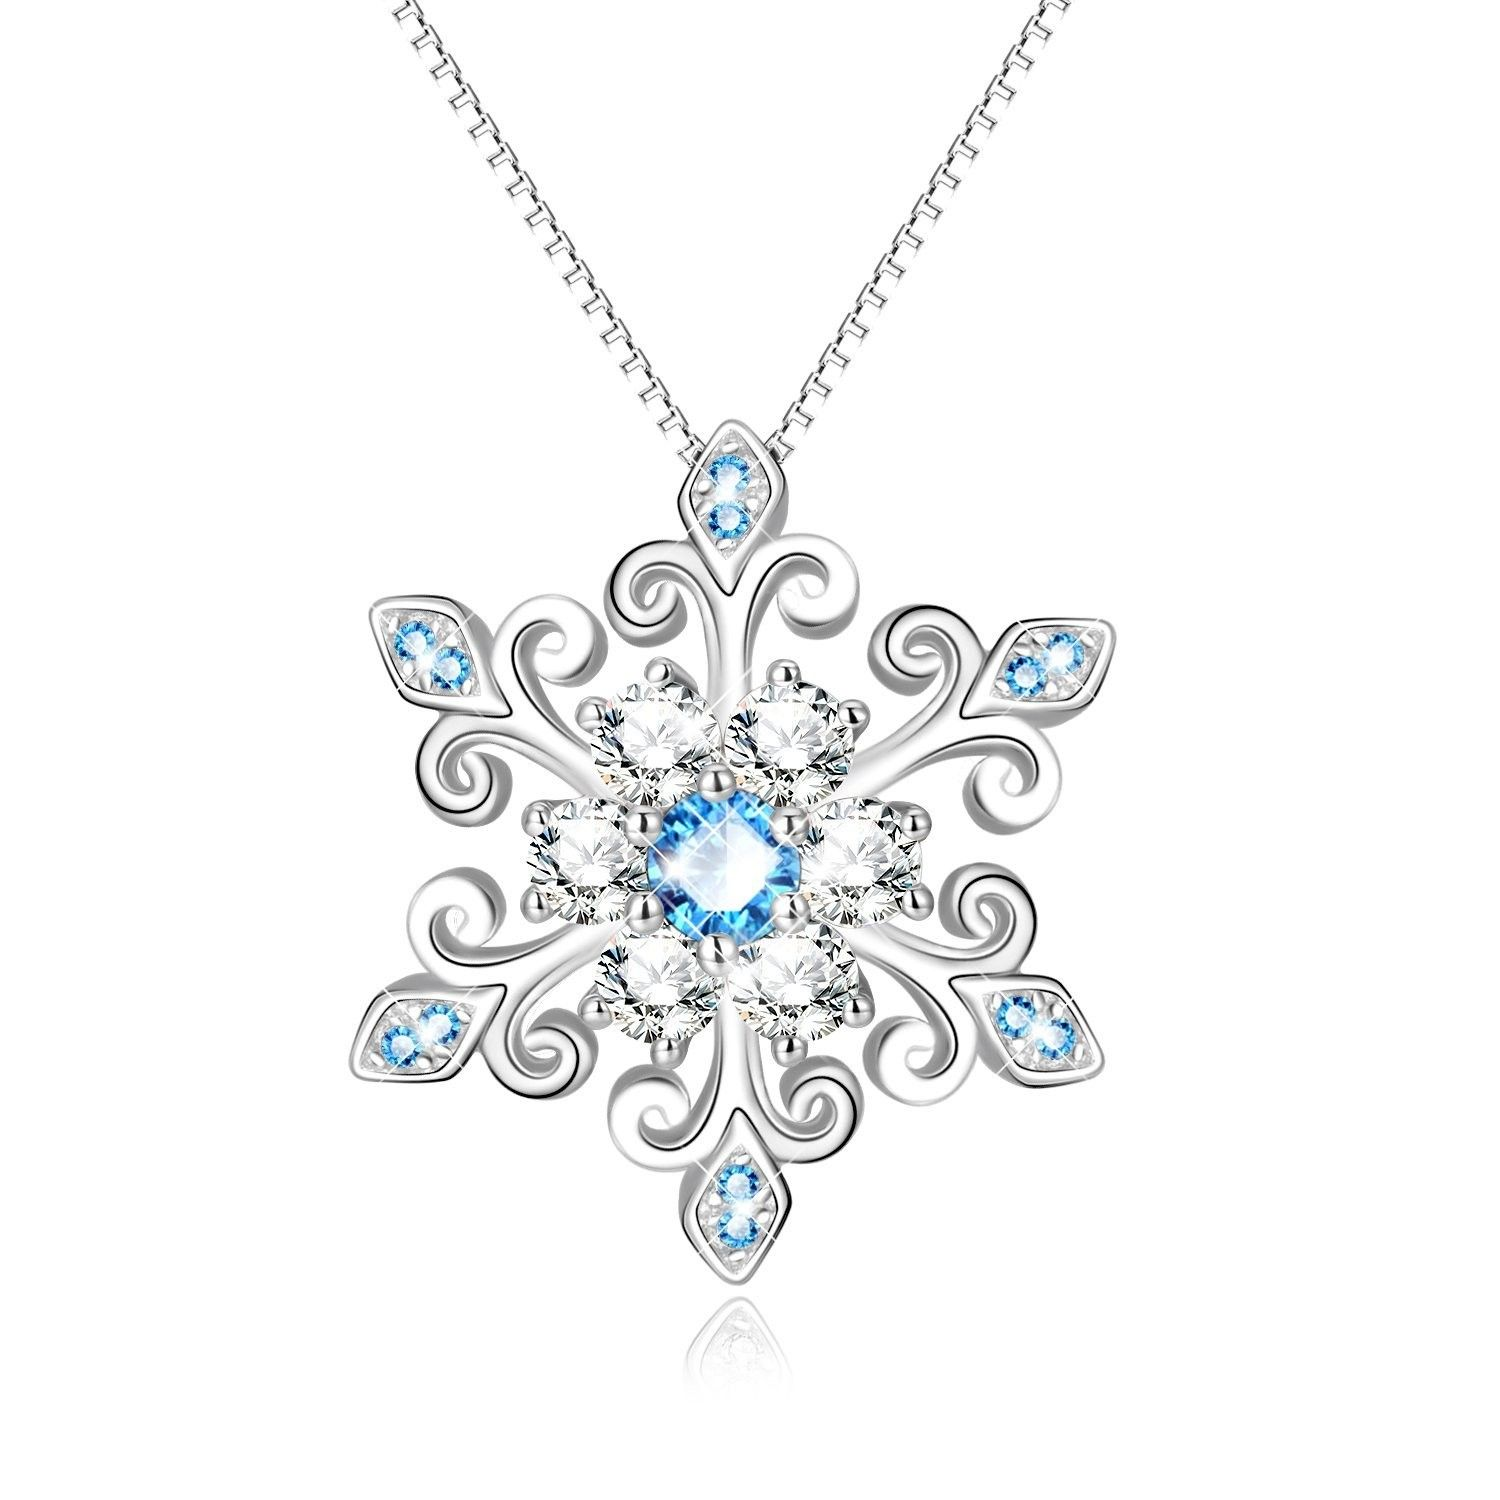 Pendants, 925 Sterling Silver Fleur De Lis Blue and White Snowflake Pendant Necklace-Gift for Her - C01883S44IM  #Necklaces #designer #womensfashion #Jewelry #Styles #Pendants